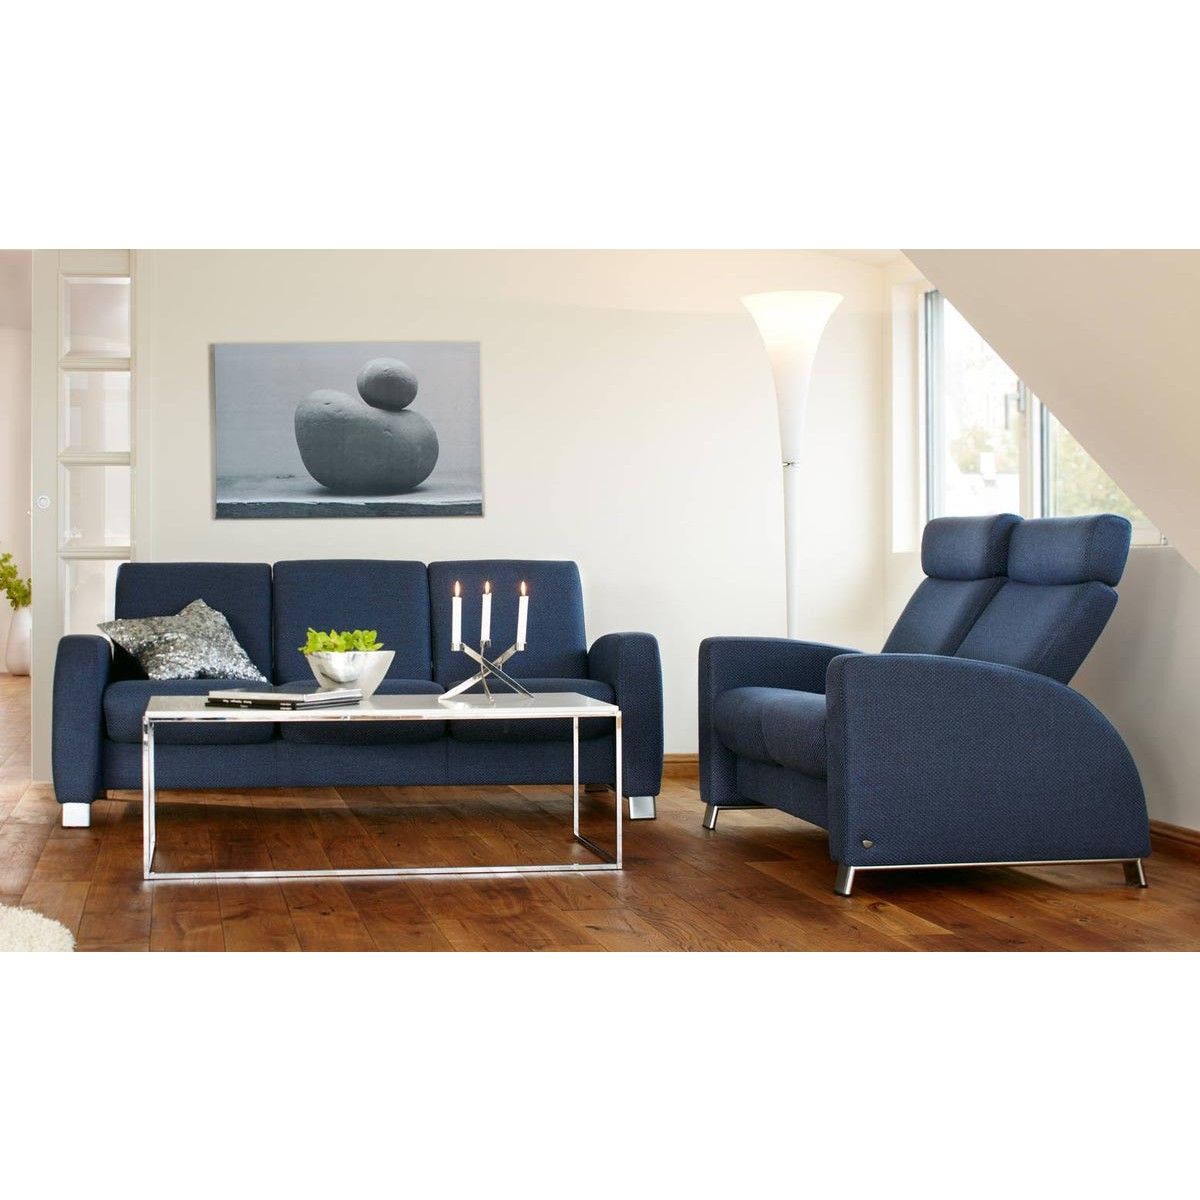 Stressless Arion Low Back Sofa. Display Gallery Item 1; Display Gallery  Item 2 ...